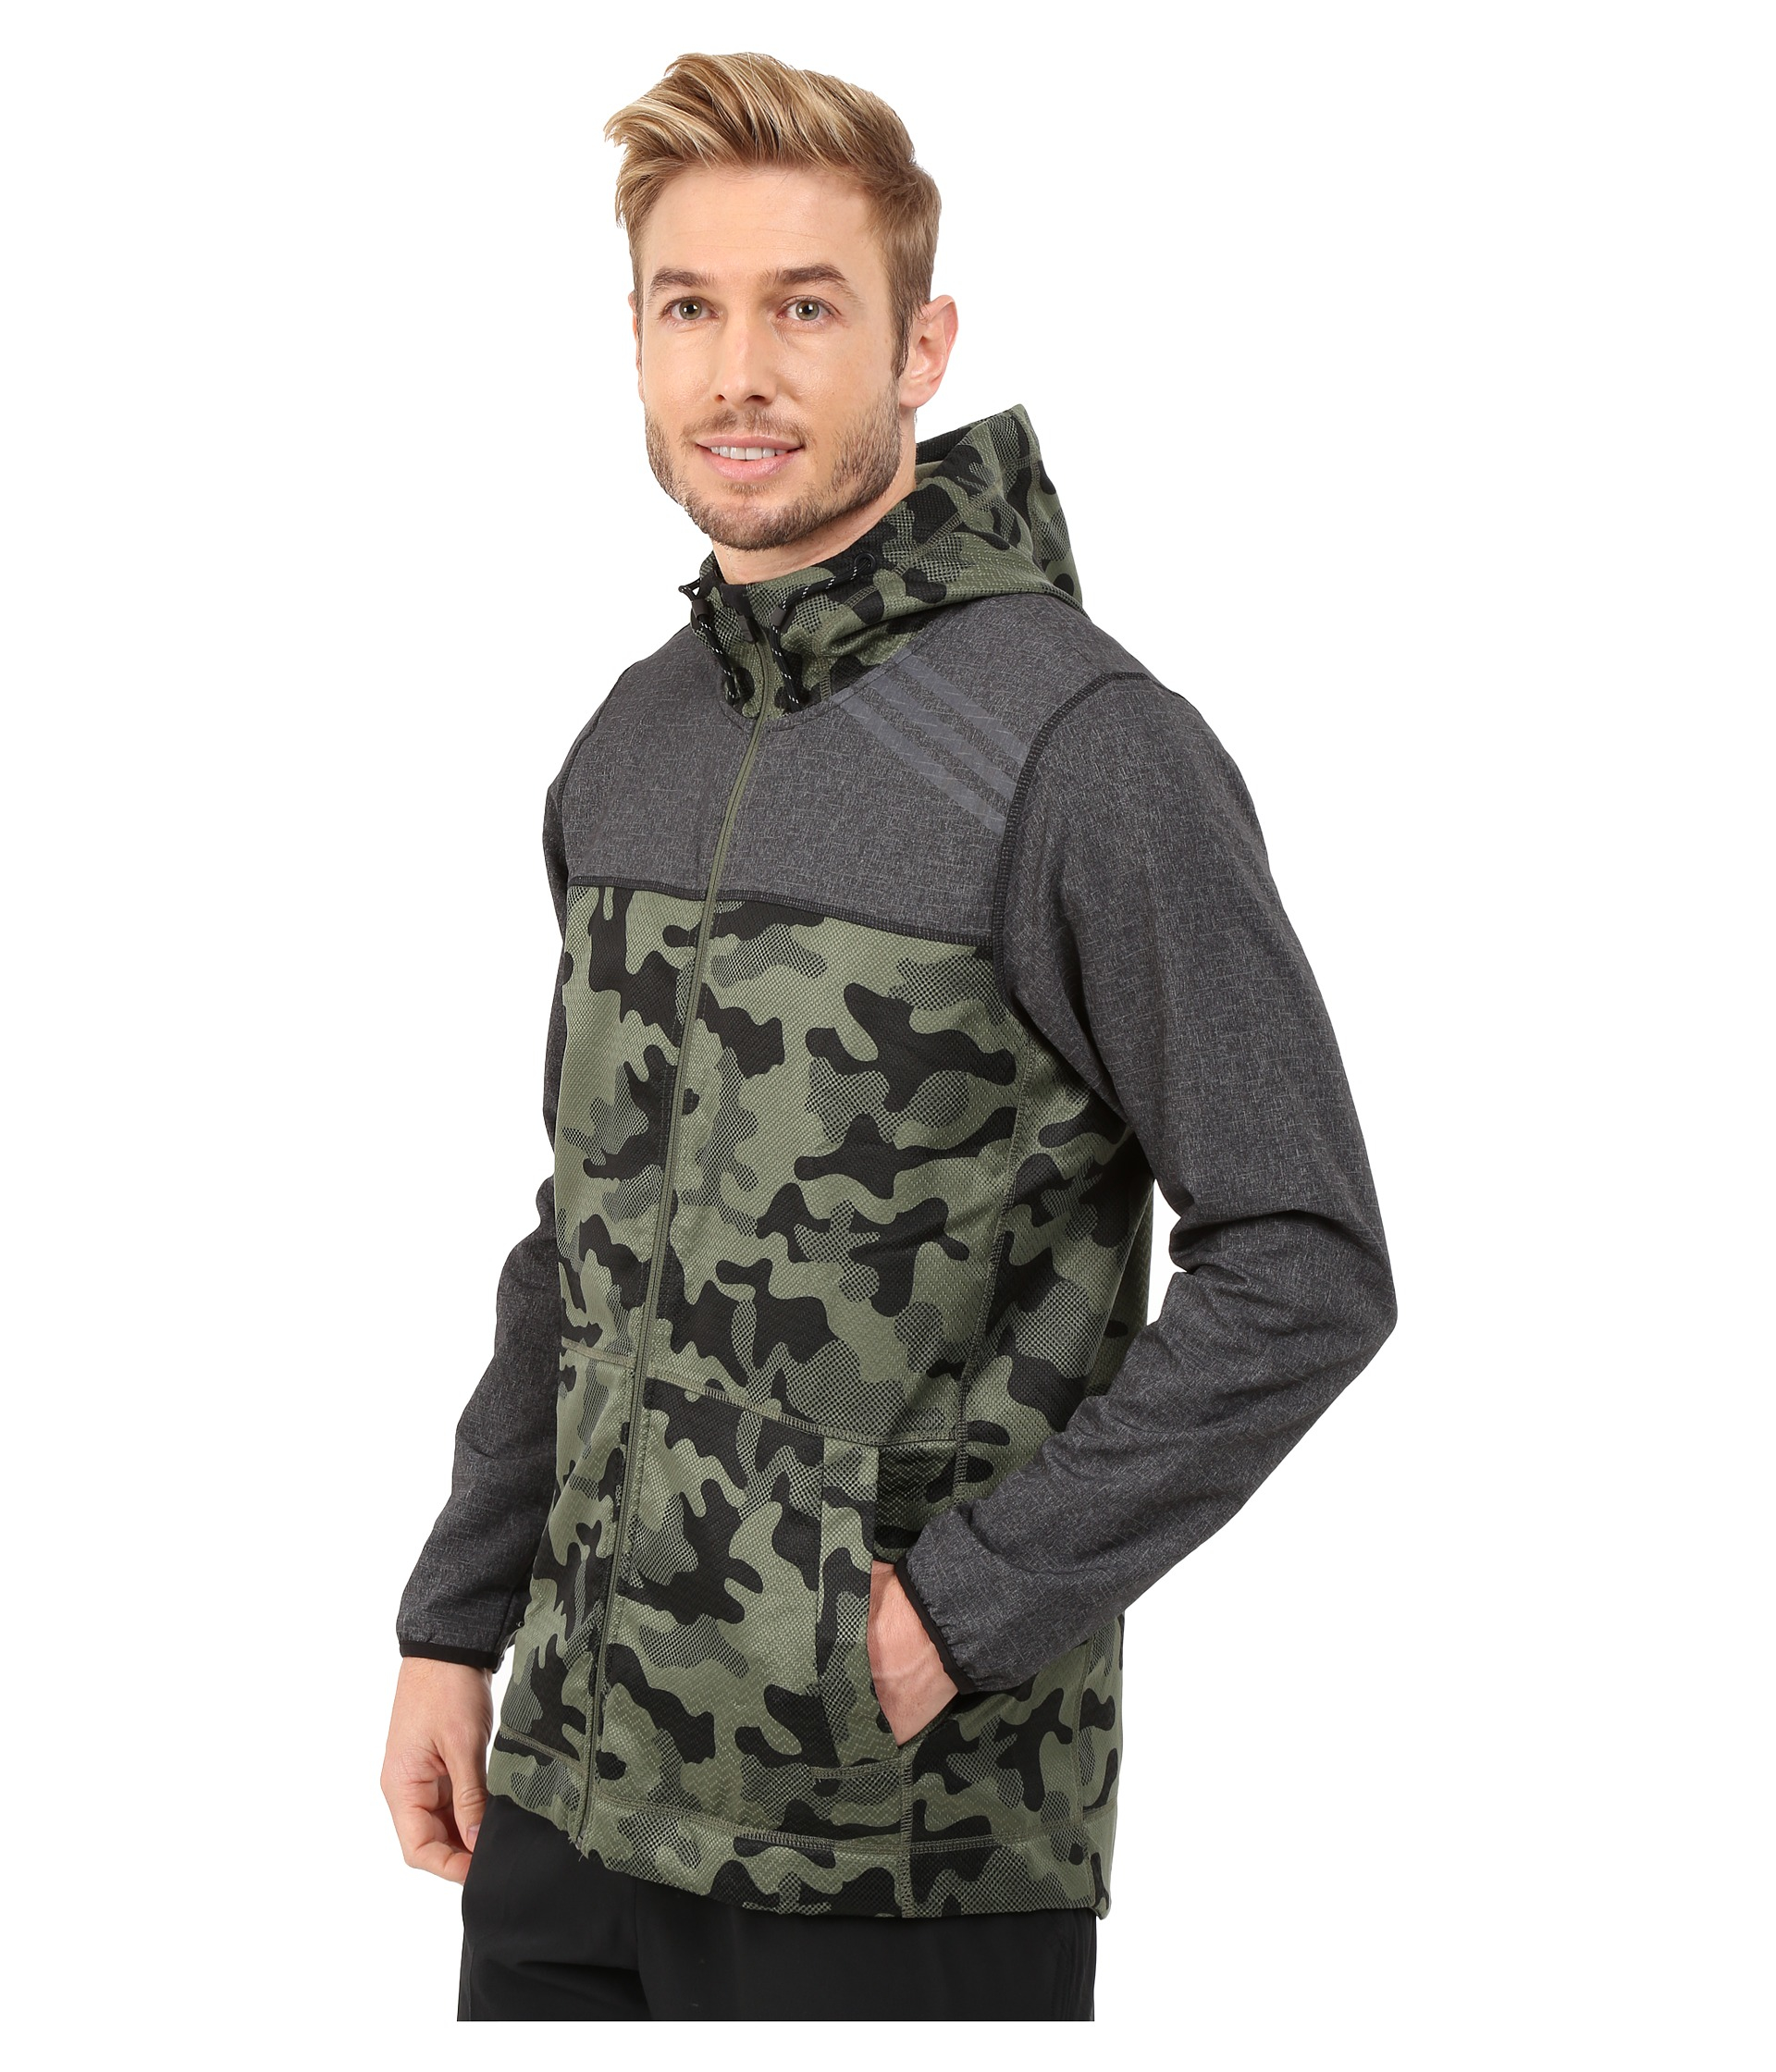 adidas s1 indestructible camo jacket in green for men lyst. Black Bedroom Furniture Sets. Home Design Ideas